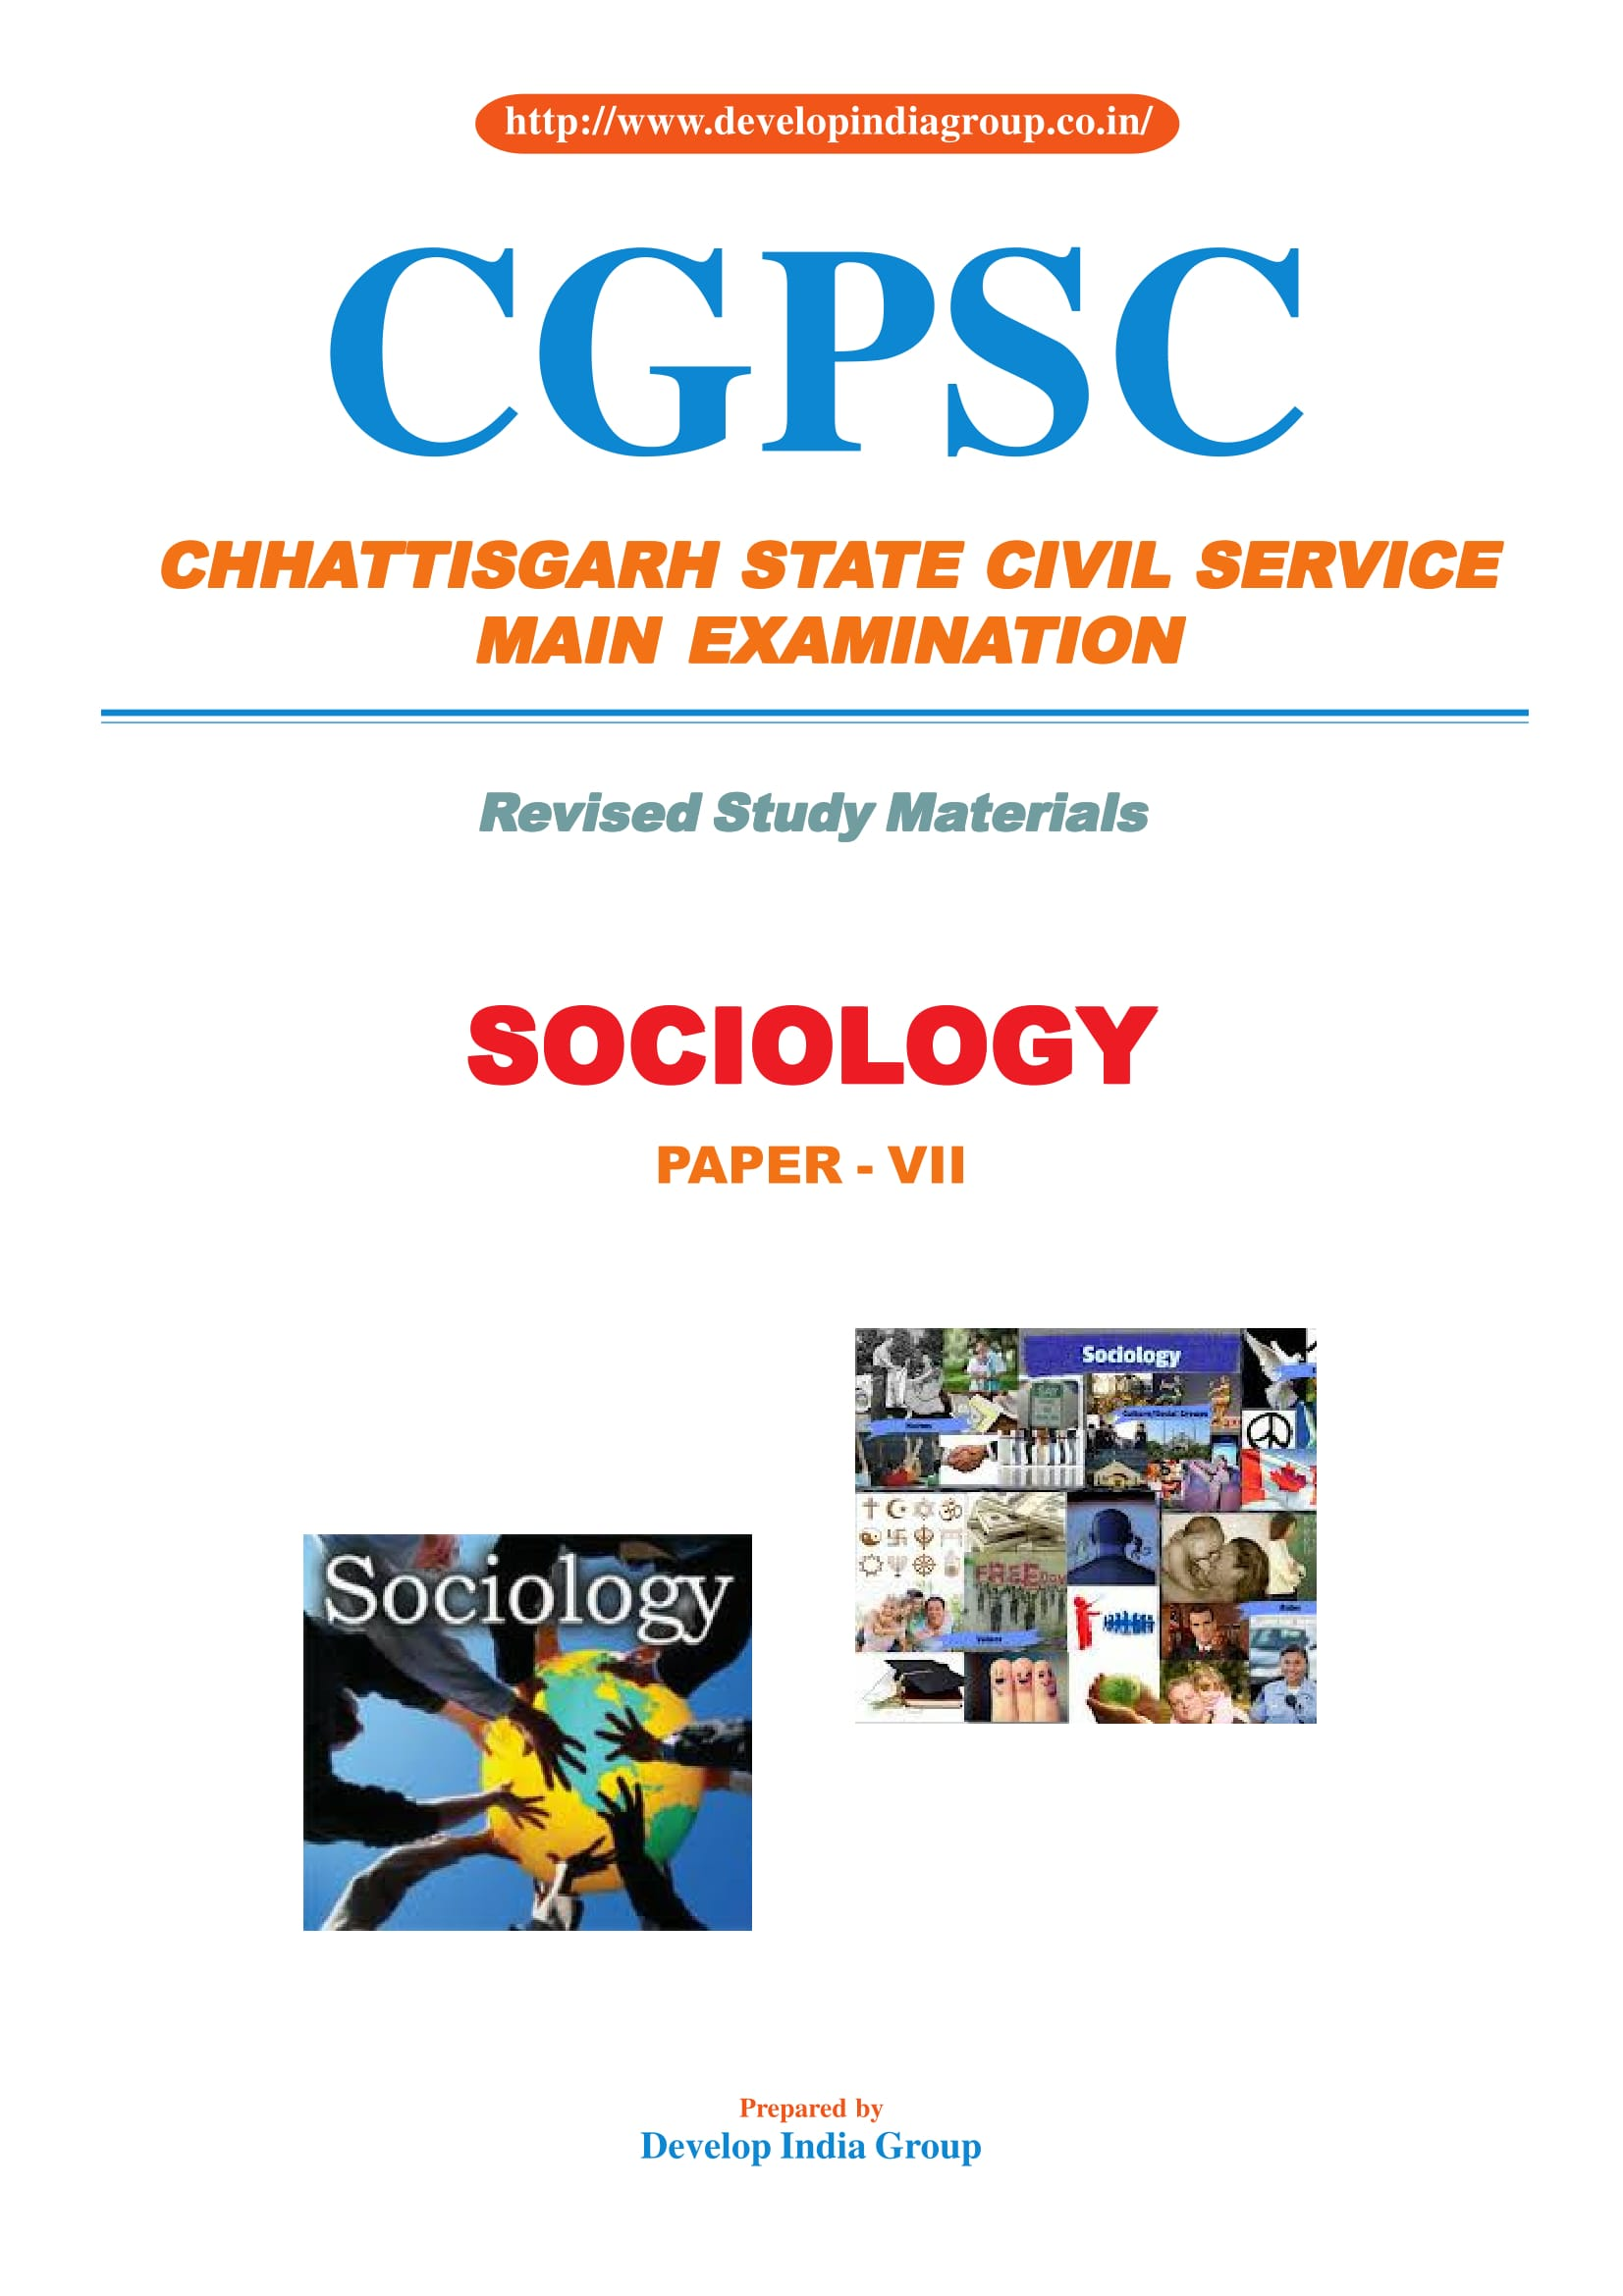 CGPSC_Main_Exam_Paper_7_Sociology